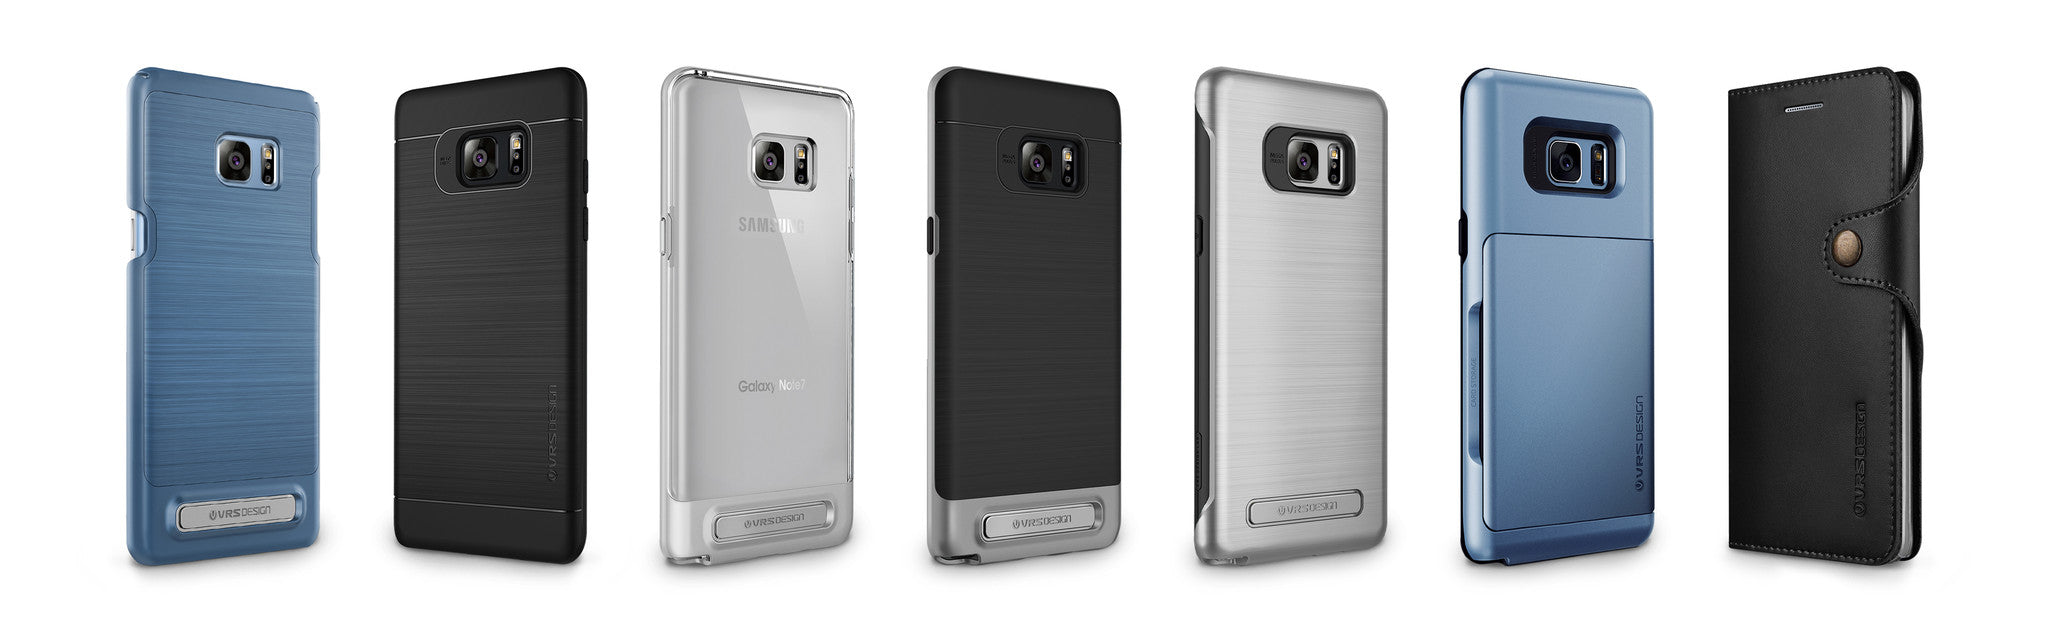 VRS Design uncovers their latest lineup for the Note 7 release